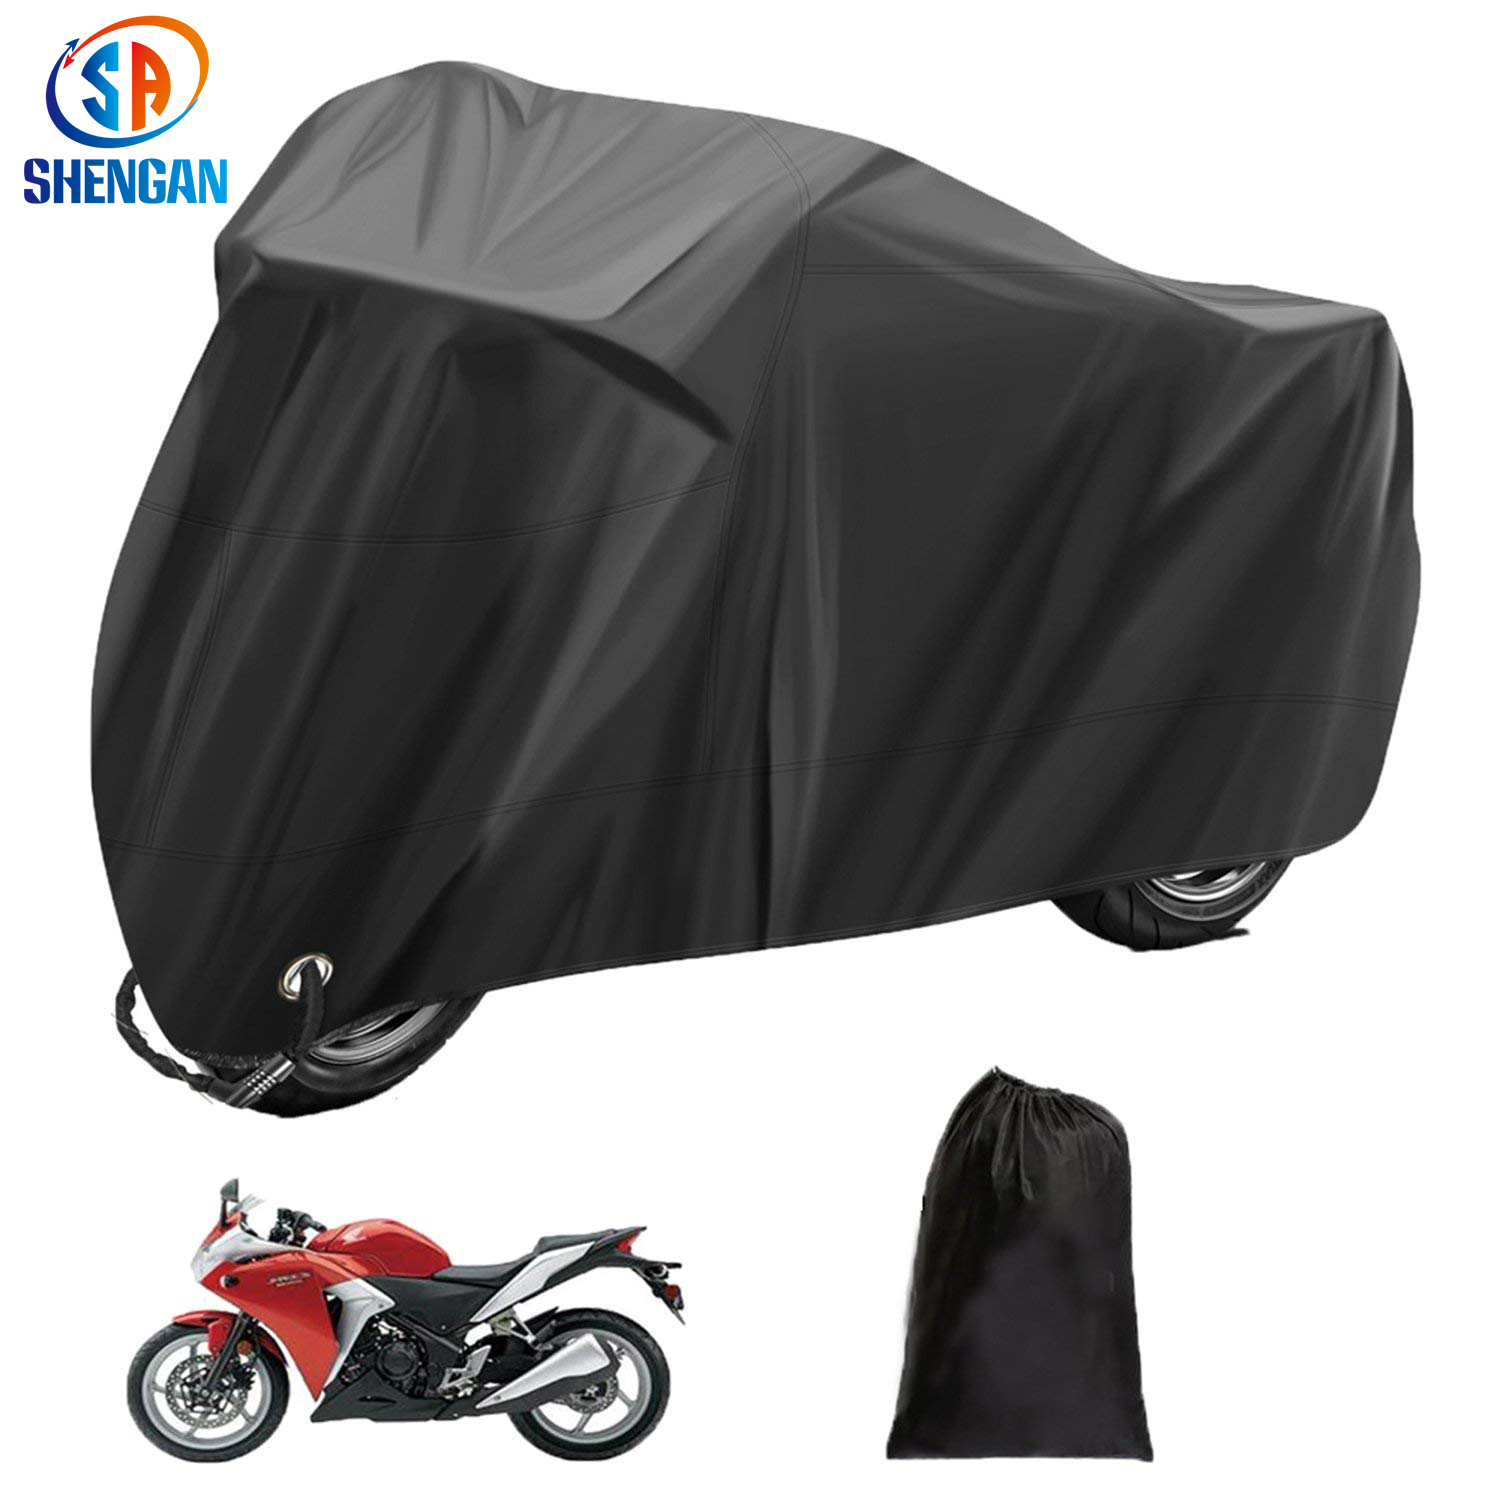 210D polyester waterproof and anti-uv protection black match silver motorcycle cover motorcycle accessories